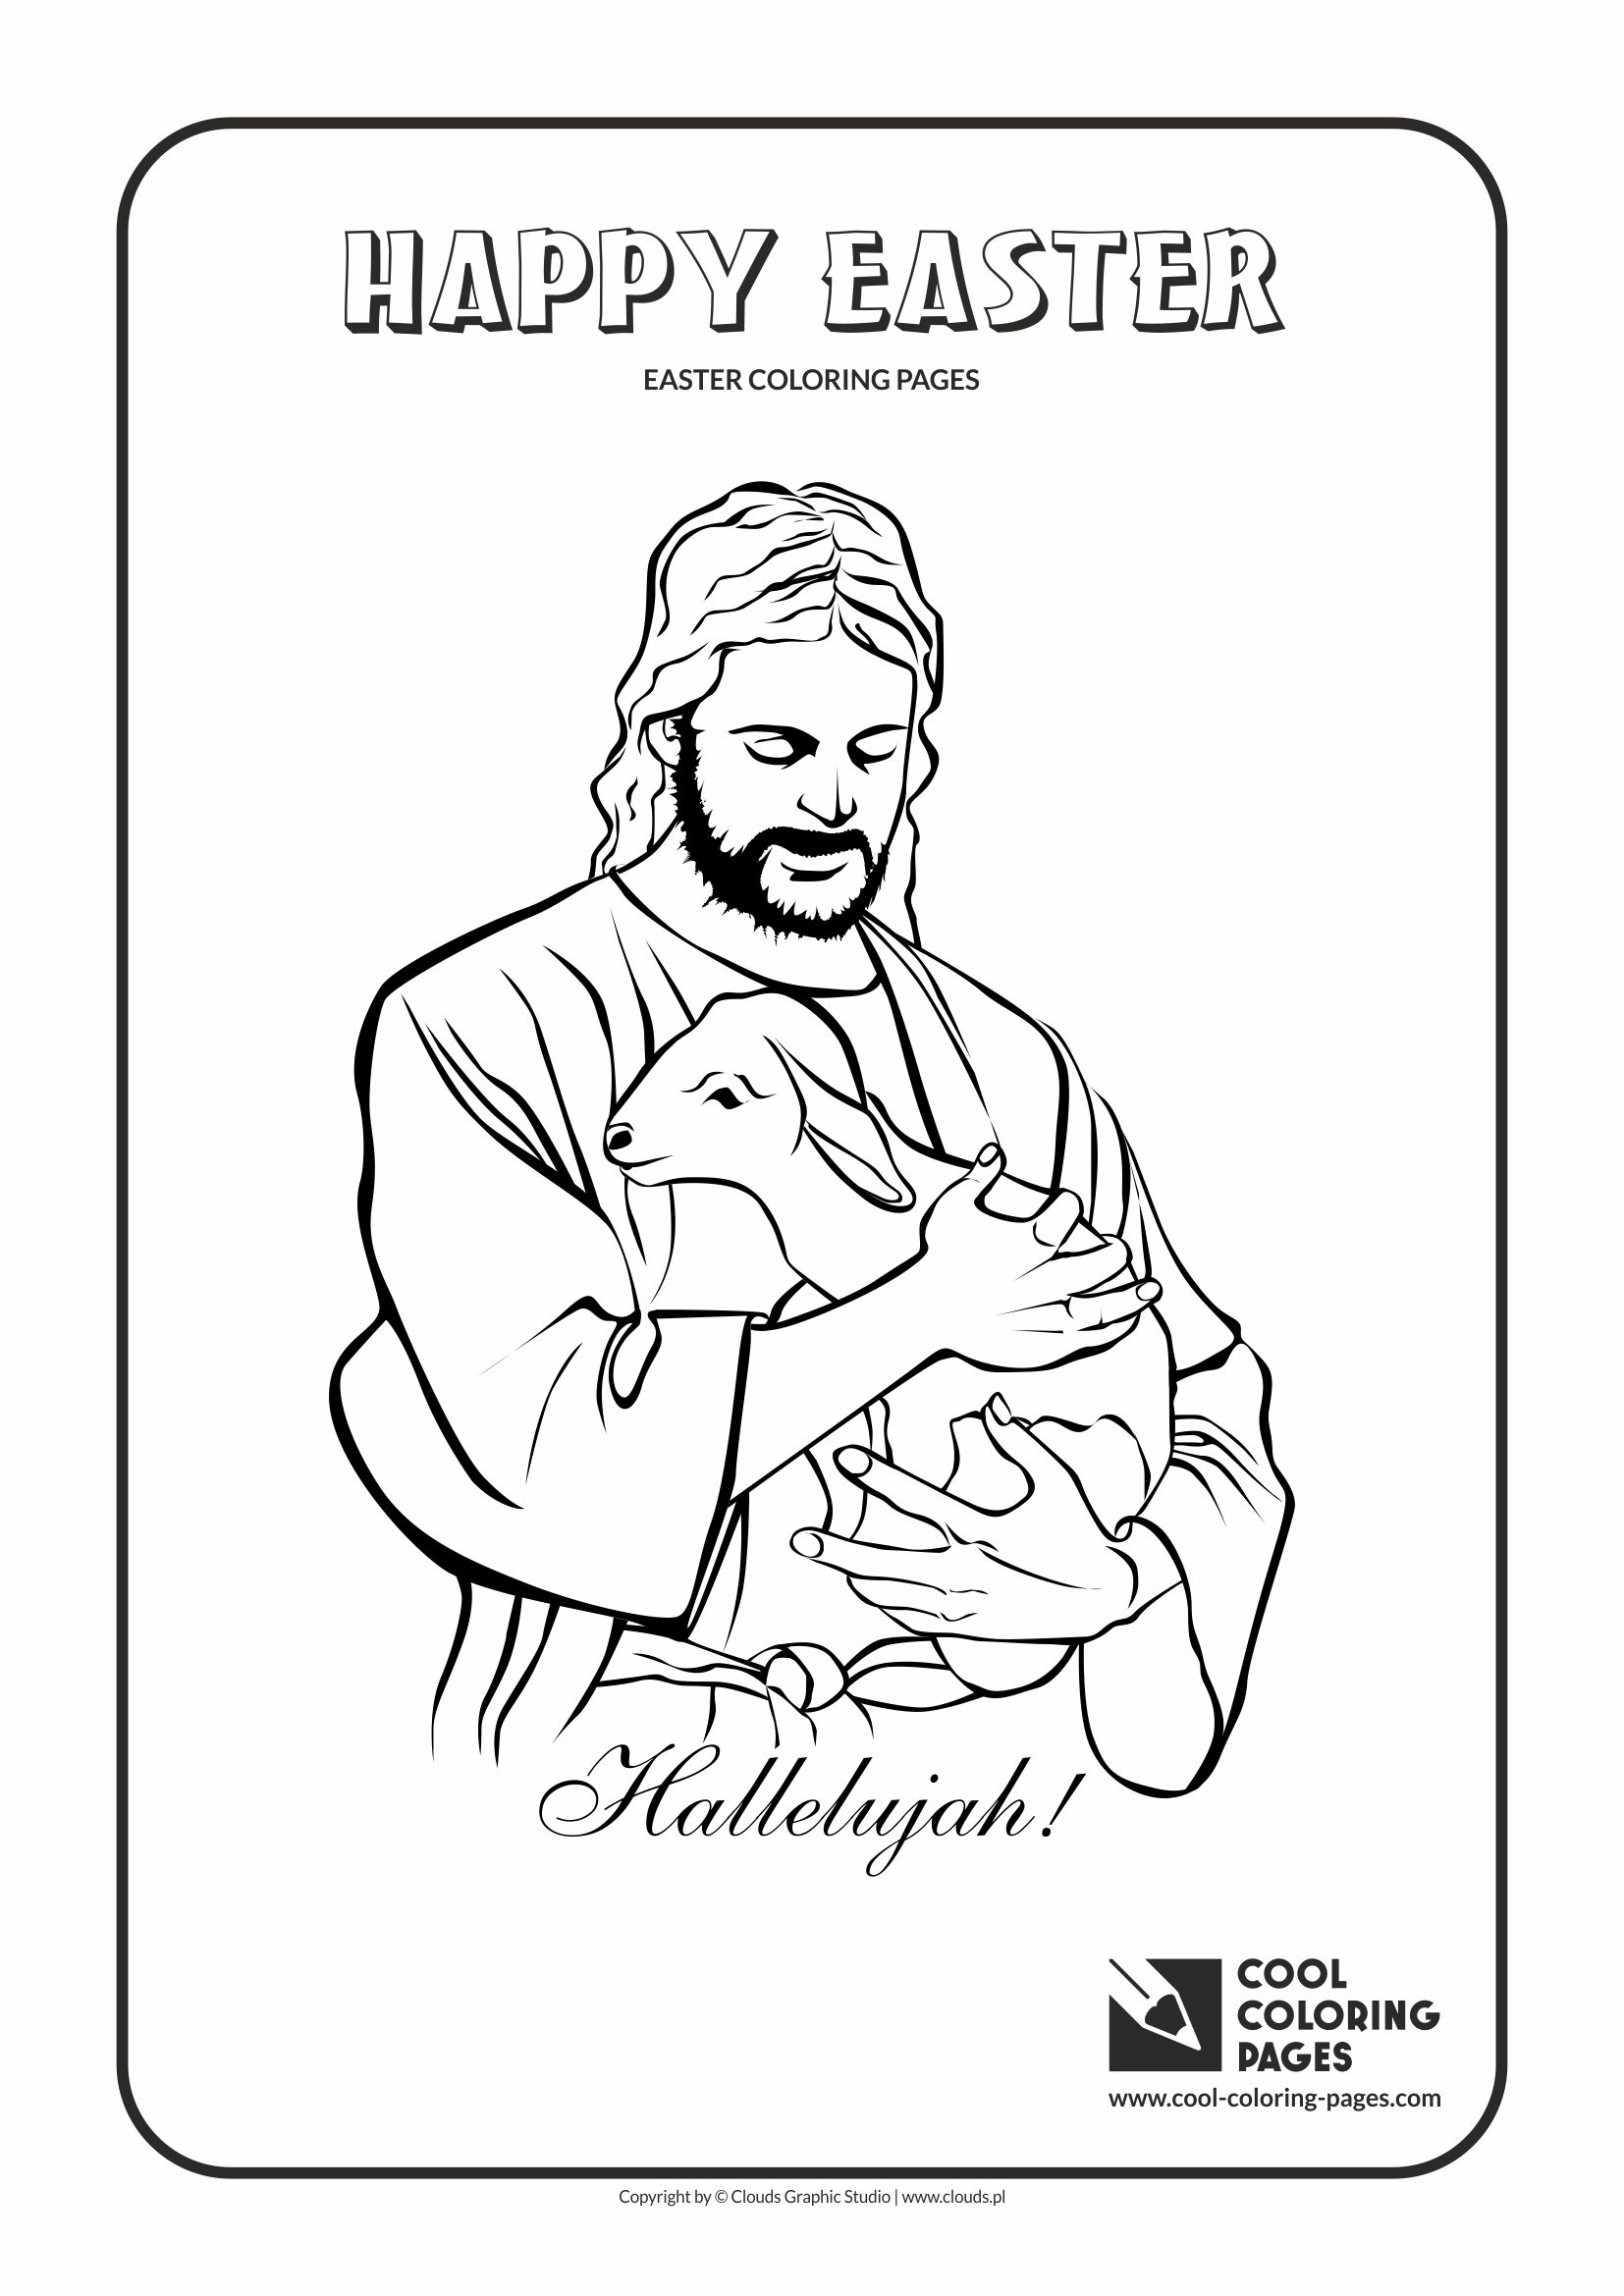 Cool Coloring Pages Easter